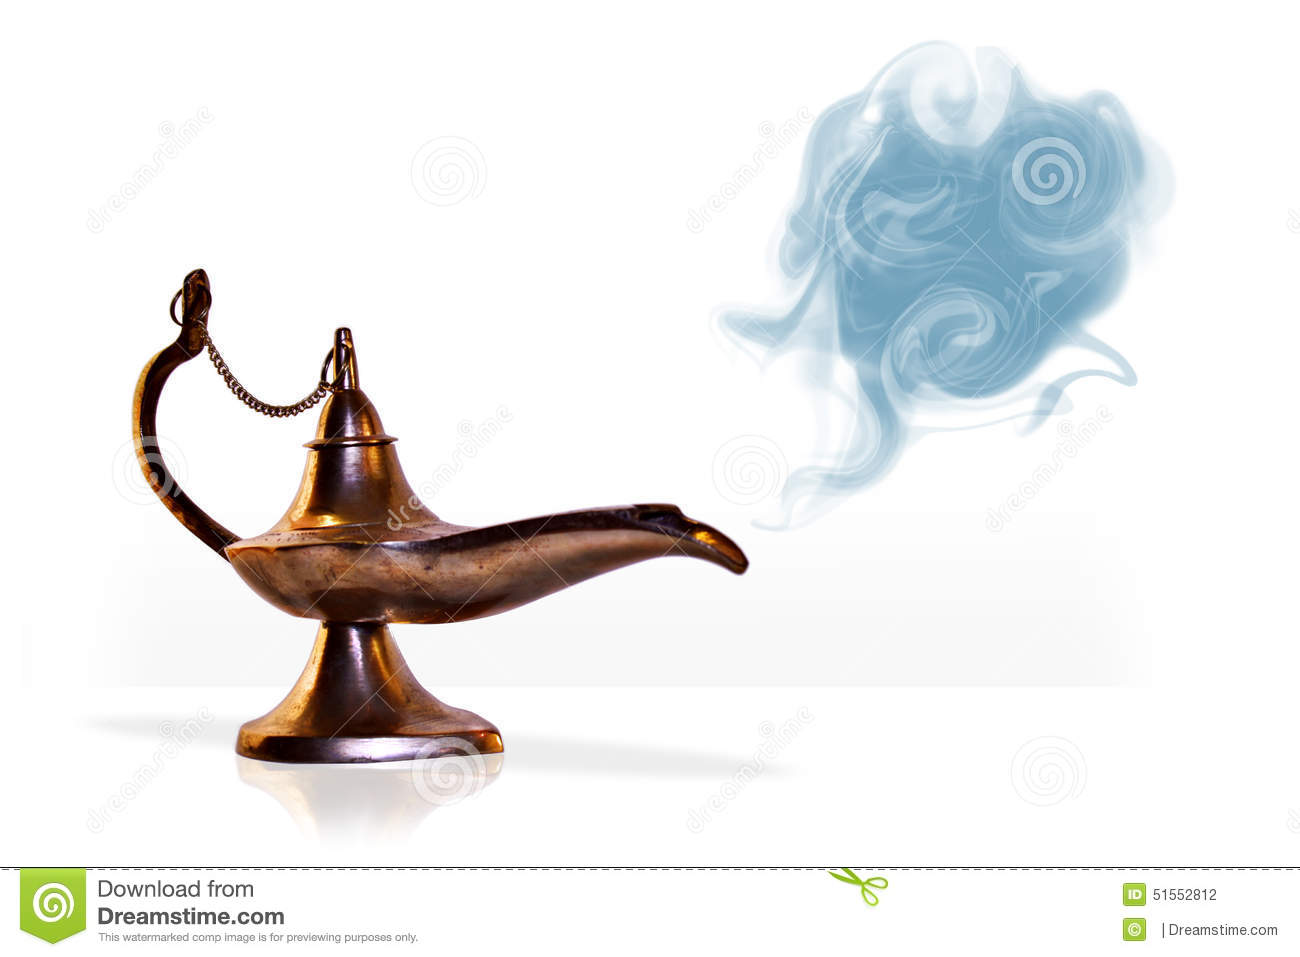 Magical Aladdin Genie Lamp With Smoke Stock Photo - Image of ... for Magic Lamp With Smoke  555kxo